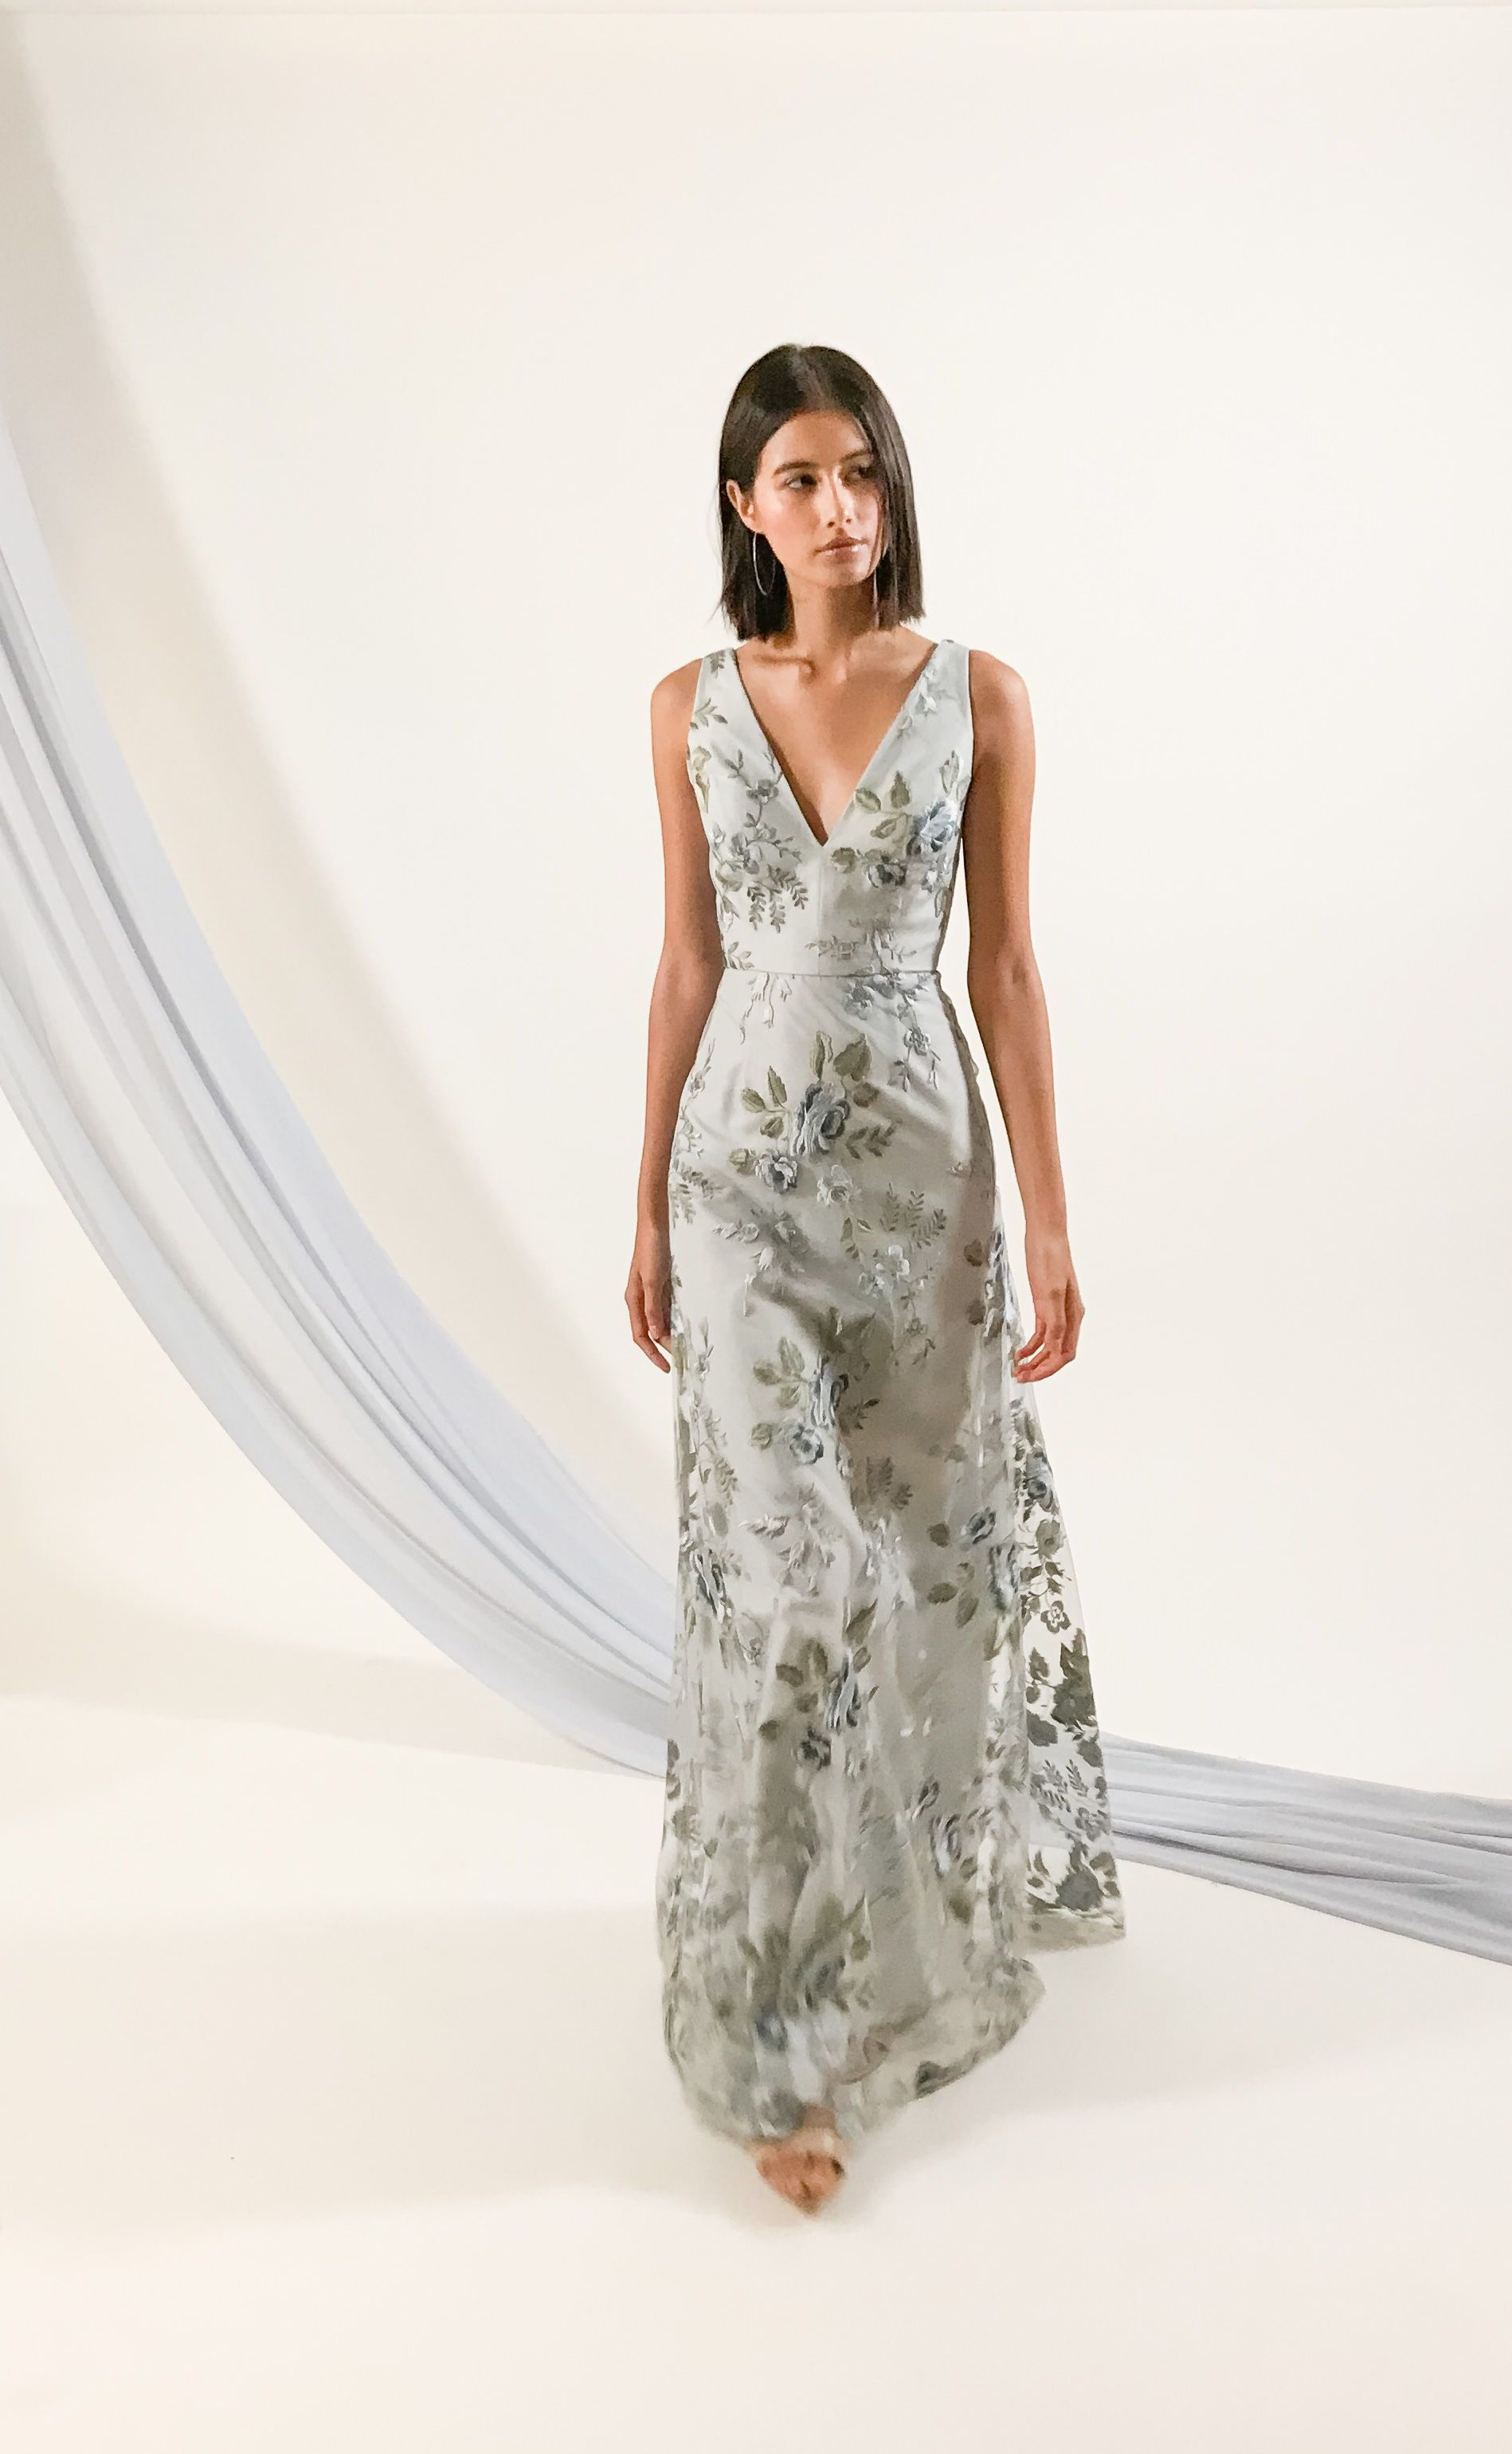 Our Crowd Favorite Enchanted Floral Embroidery Back In New Styles And A New Shade Of Wedding Guest Dress Summer Wedding Guest Dress Garden Wedding Dress Guest [ 3080 x 1898 Pixel ]